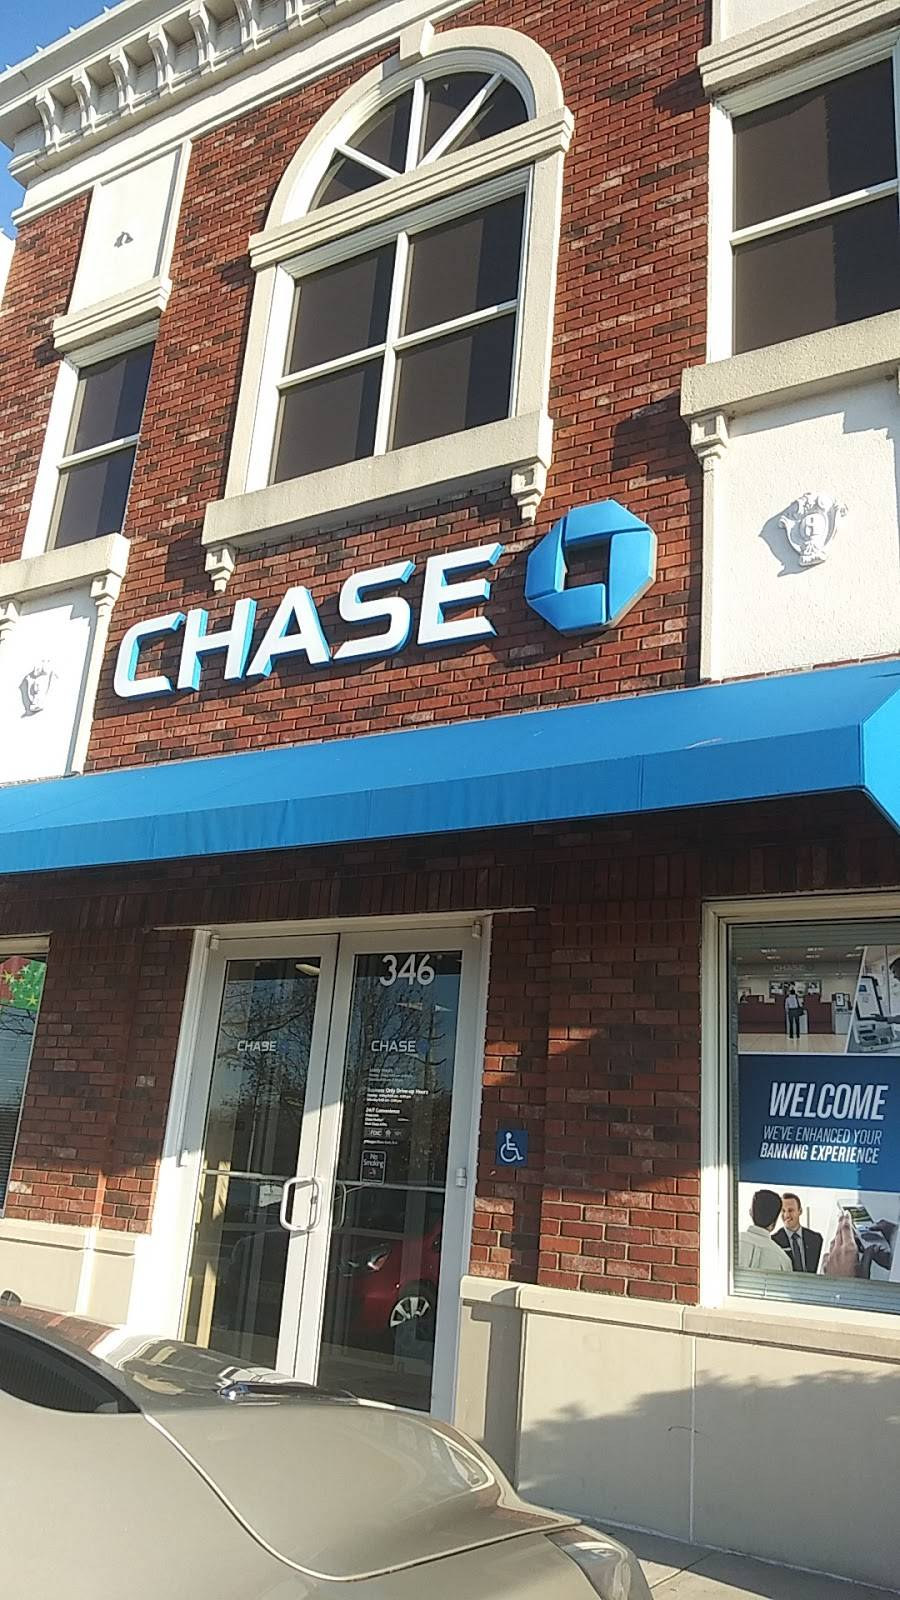 Chase Bank - bank  | Photo 4 of 6 | Address: 4430 Lavon Dr Suite 346, Garland, TX 75040, USA | Phone: (972) 530-3449